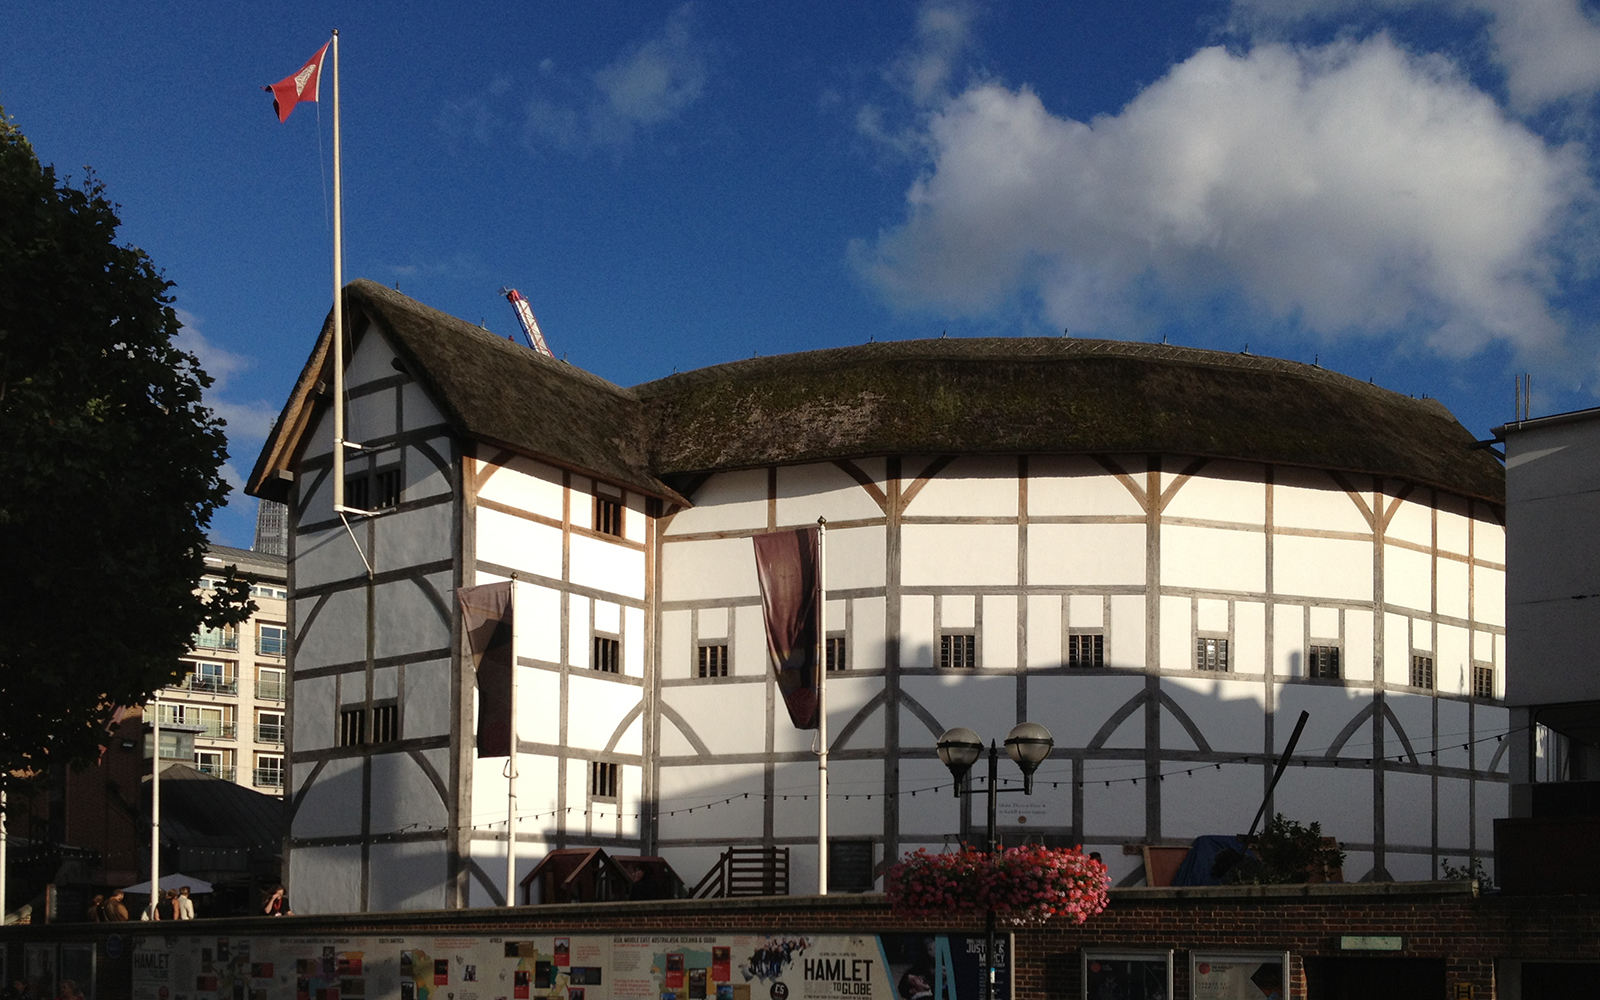 the history of the globe theater used in performance of shakespearean plays The globe theater was the original site for a lot of shakespeare's most famous and influential plays shakespeare and his acting troupe, lord chamberlain's men, decided to build their own theater when they were refused access to the special roofed facility, blackfriars theater.